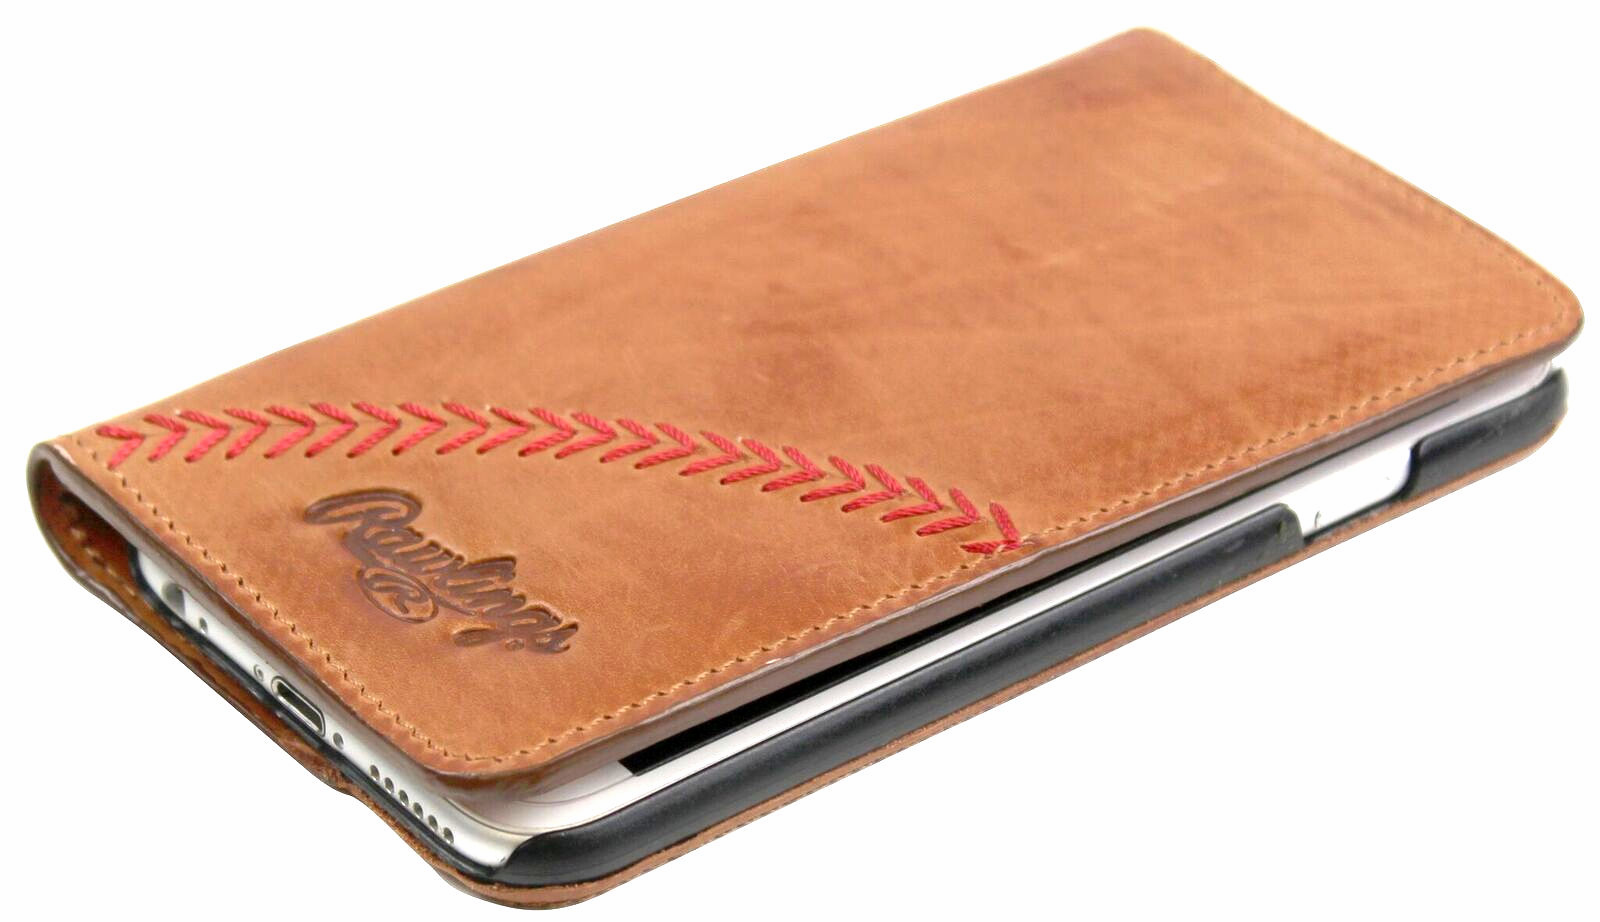 Vintage Tan Leather Baseball Stitch iPhone 6 or 7 Case by Rawlings